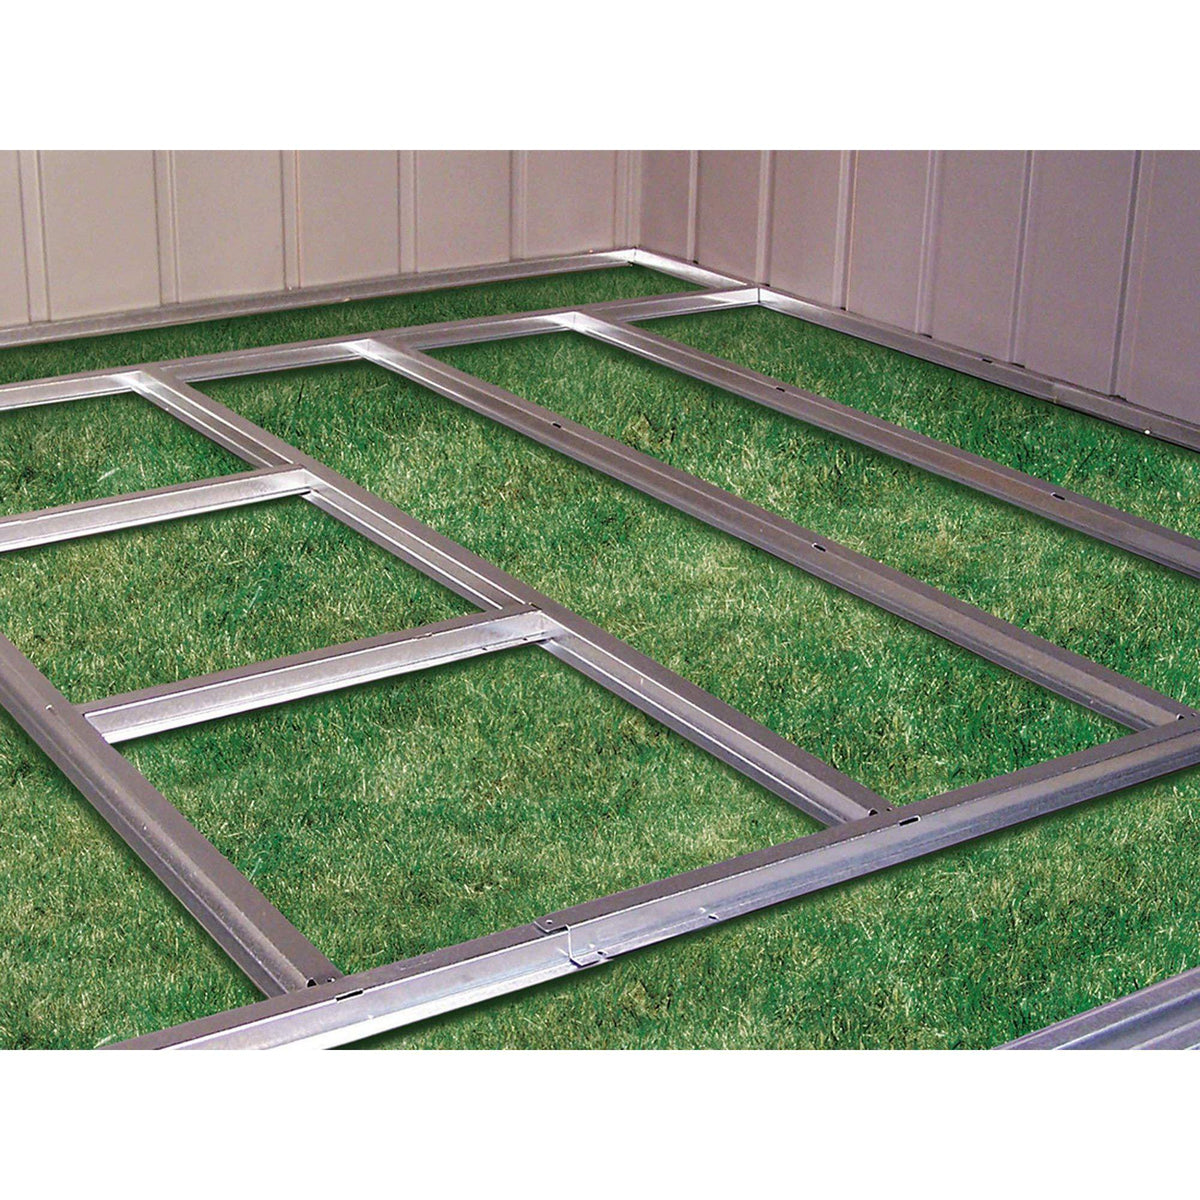 Arrow Sheds FB1014  Floor Frame Kit for 10'x11', 10'x12', 10'x13' & 10'x14' Arrow Sheds